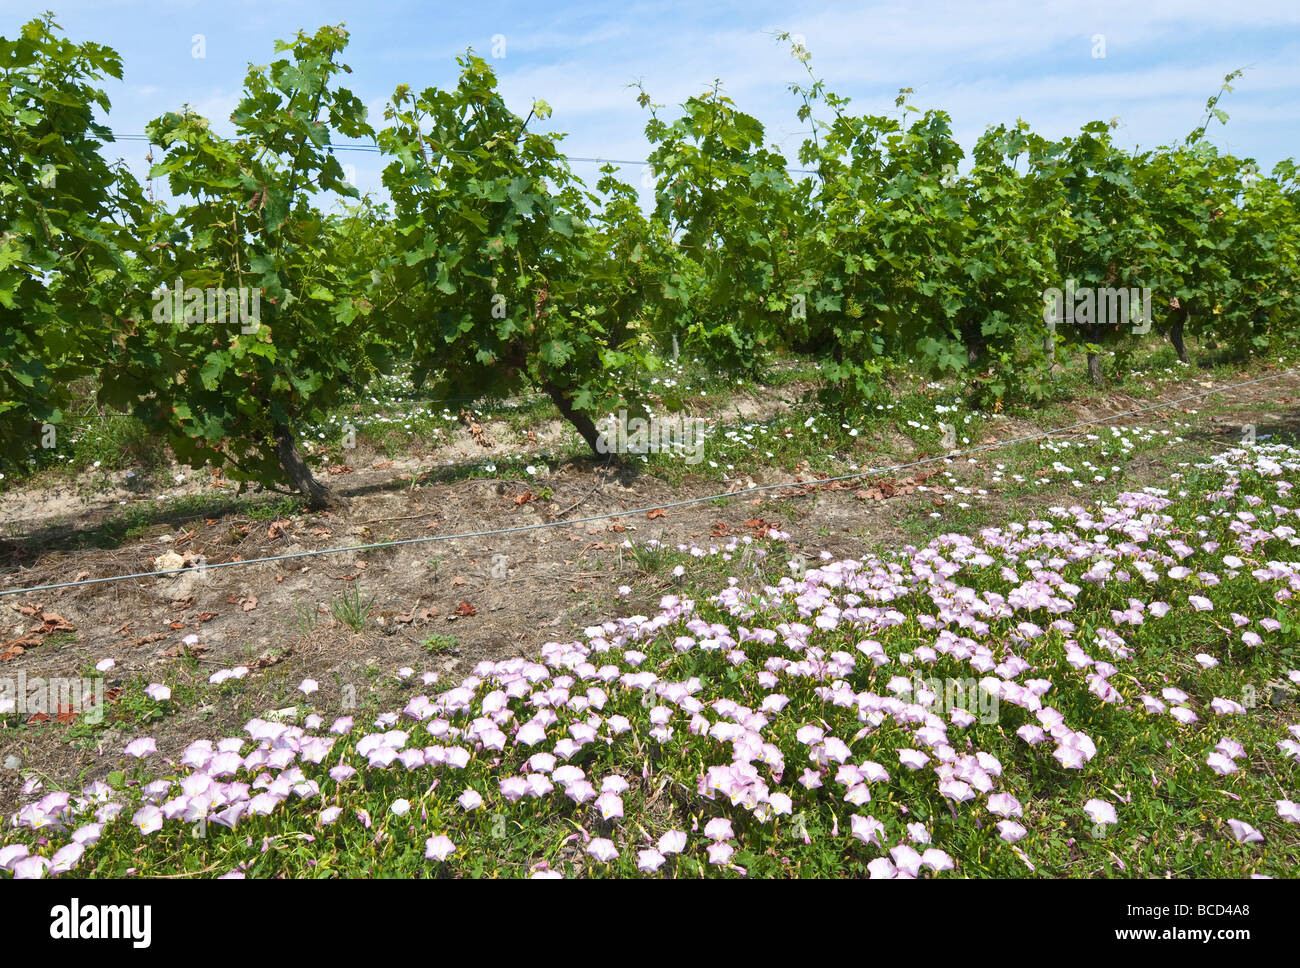 Field Bindweed / Convolvolus arvensis weed amongst grape vines, sud-Touraine, France. - Stock Image